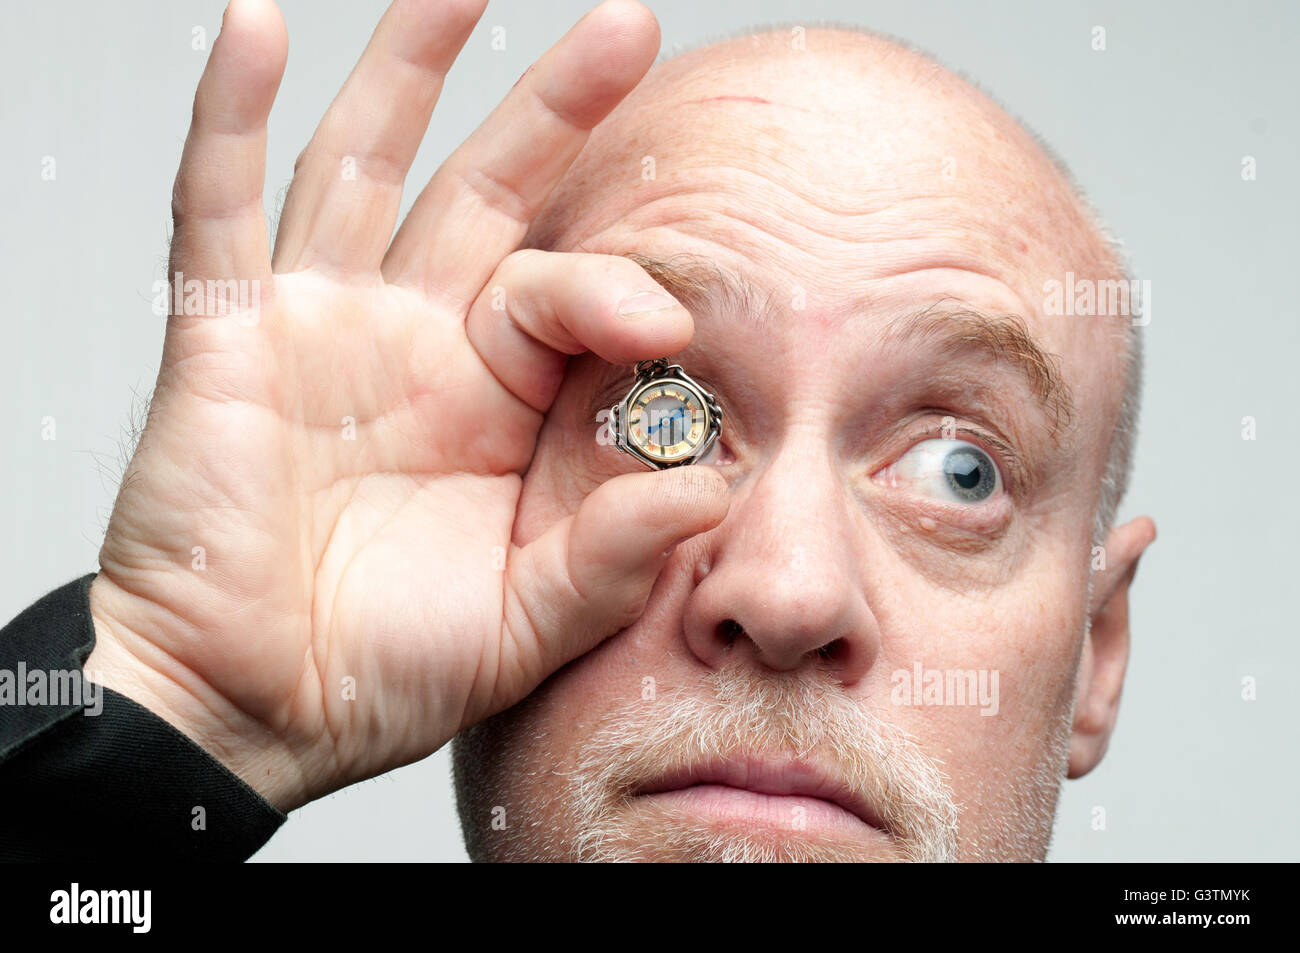 Close up of 1 person, man, with antique compass as a feature, placed over one eye - Stock Image